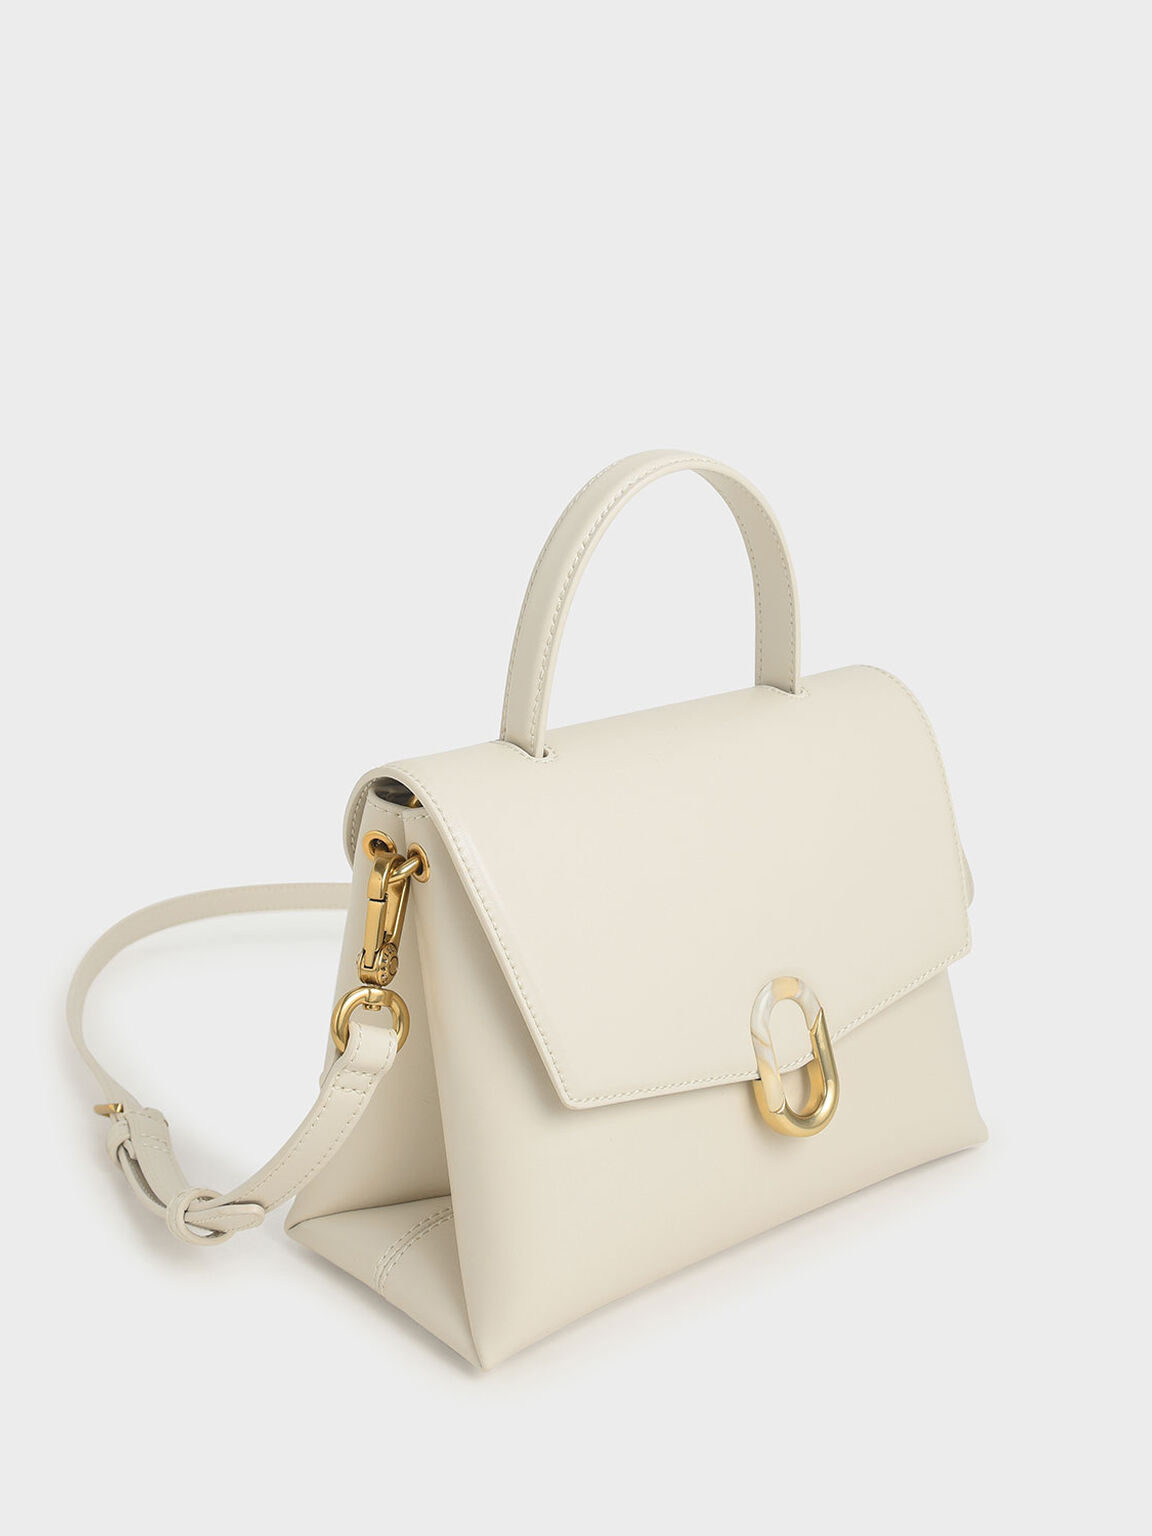 Stone-Embellished Handbag, Cream, hi-res